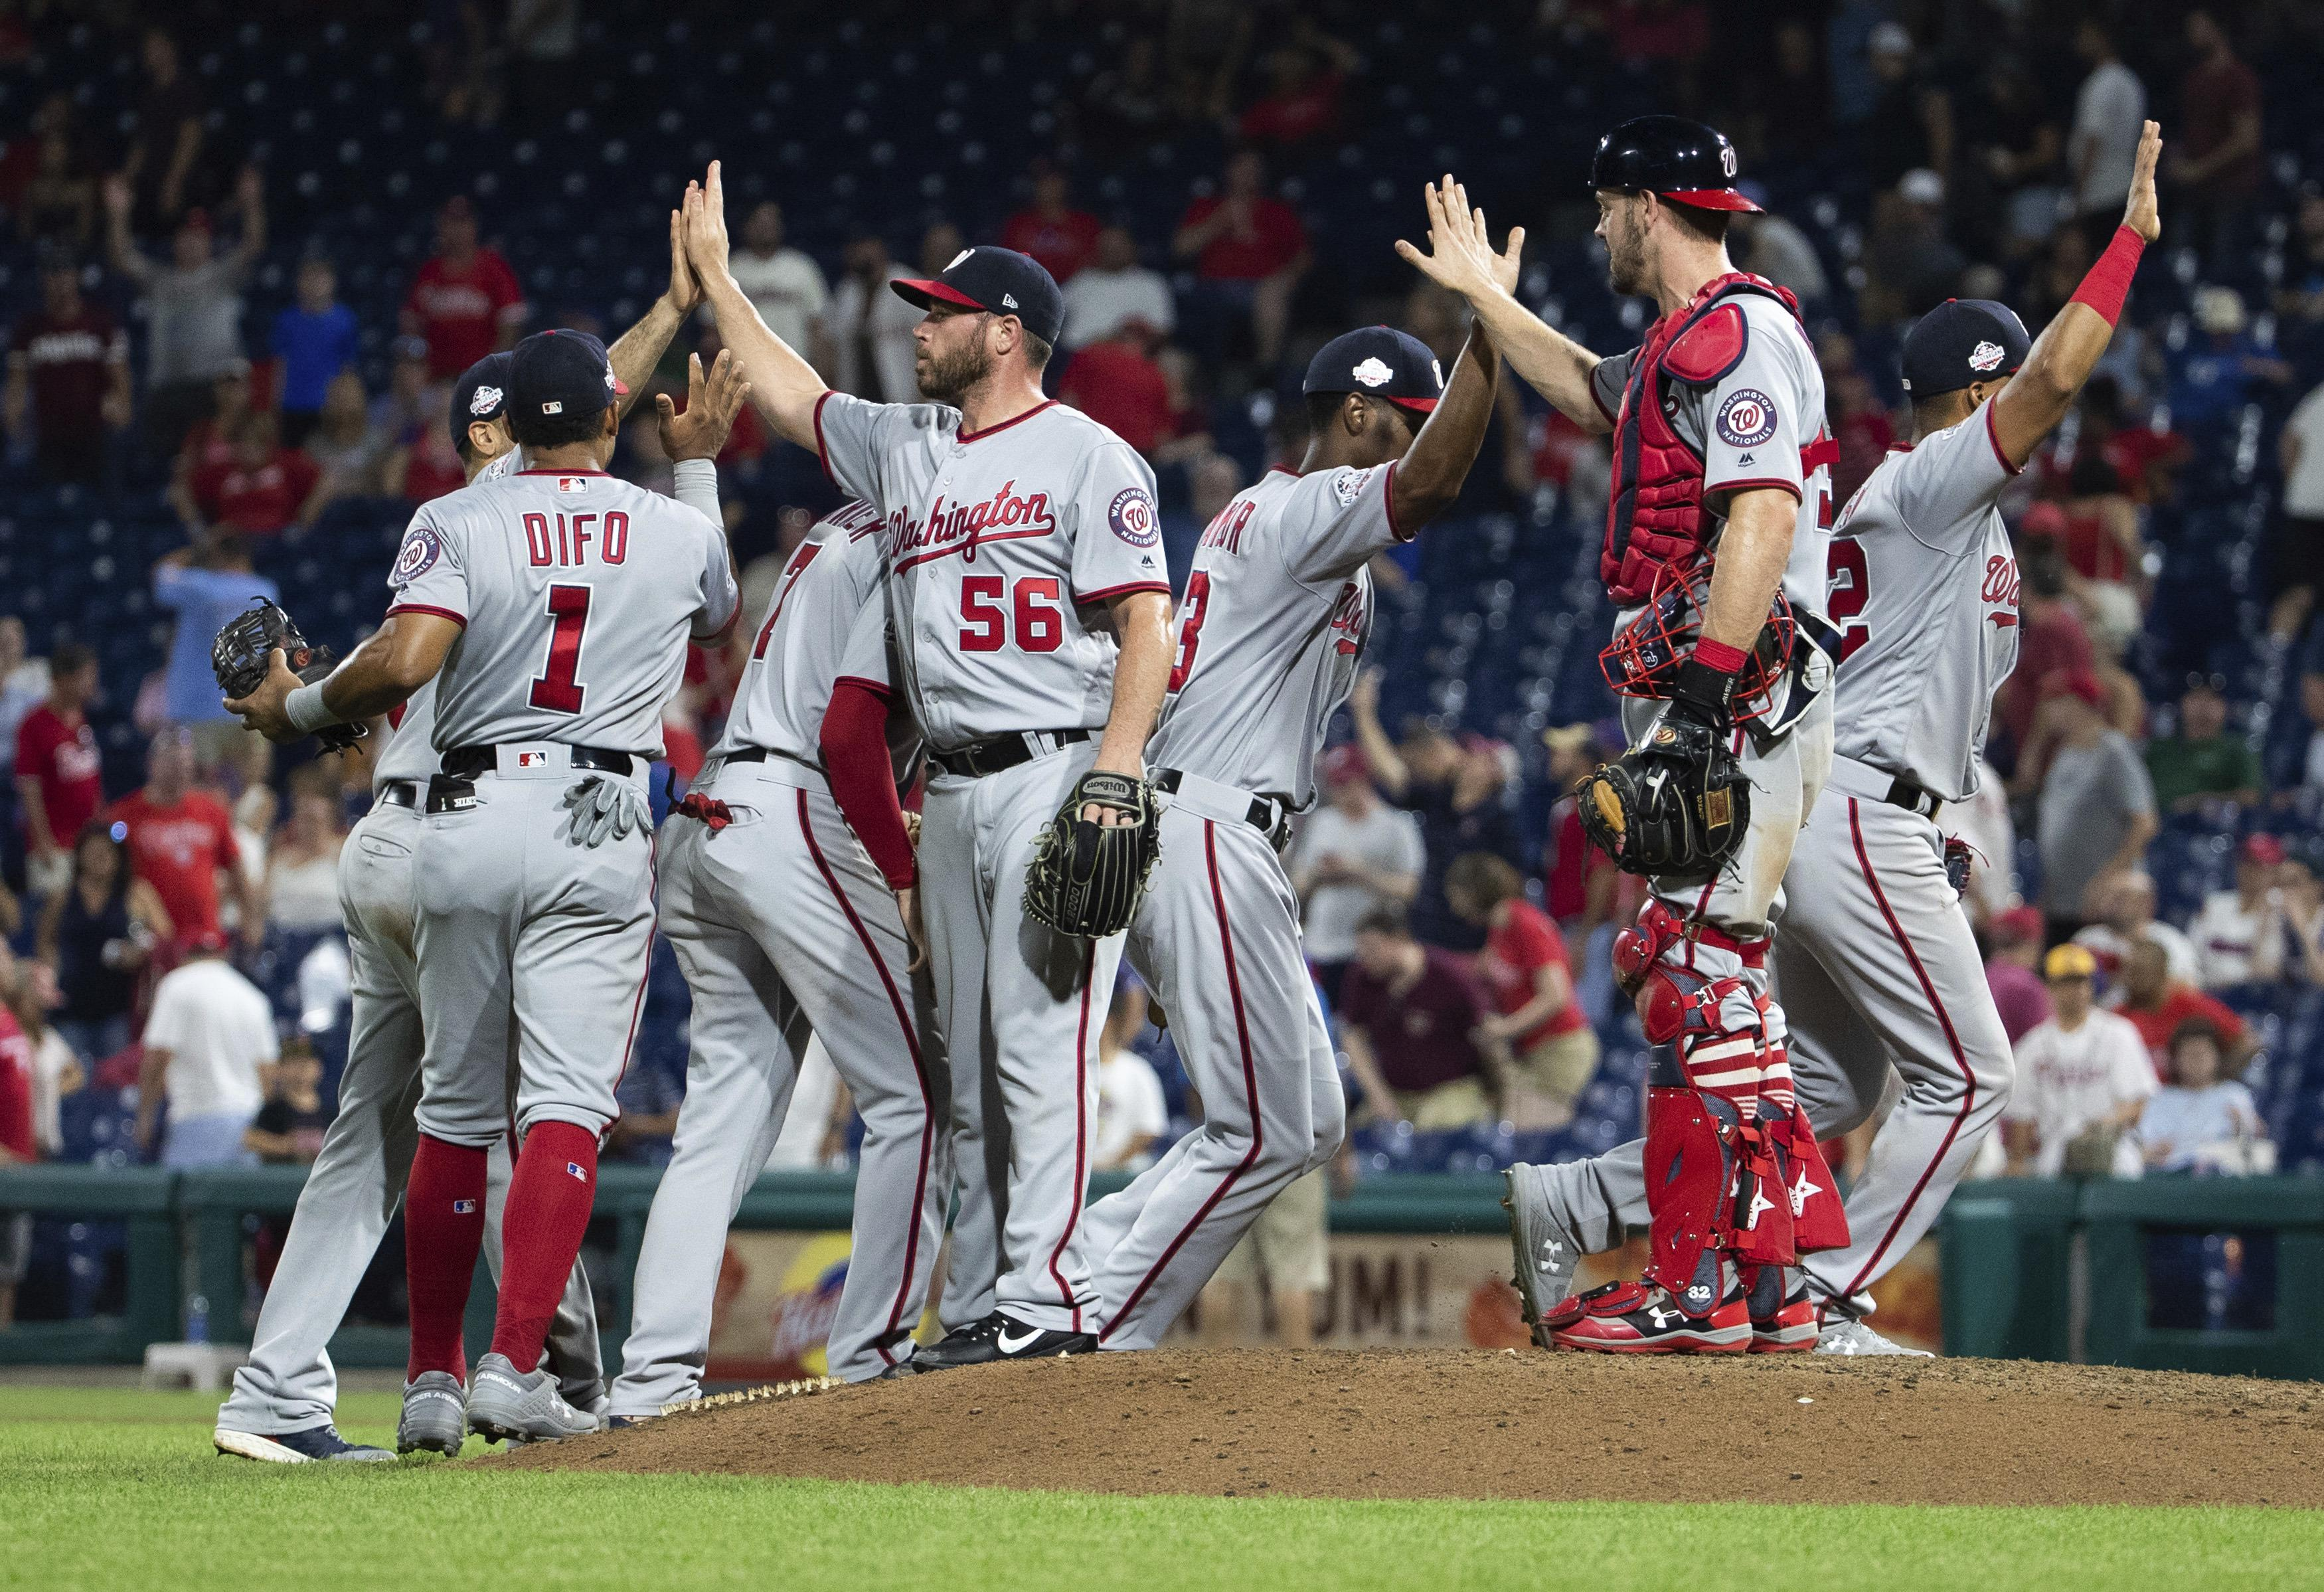 d5d512bb The Washington Nationals celebrate their 5-4 win after the ninth inning of  a baseball